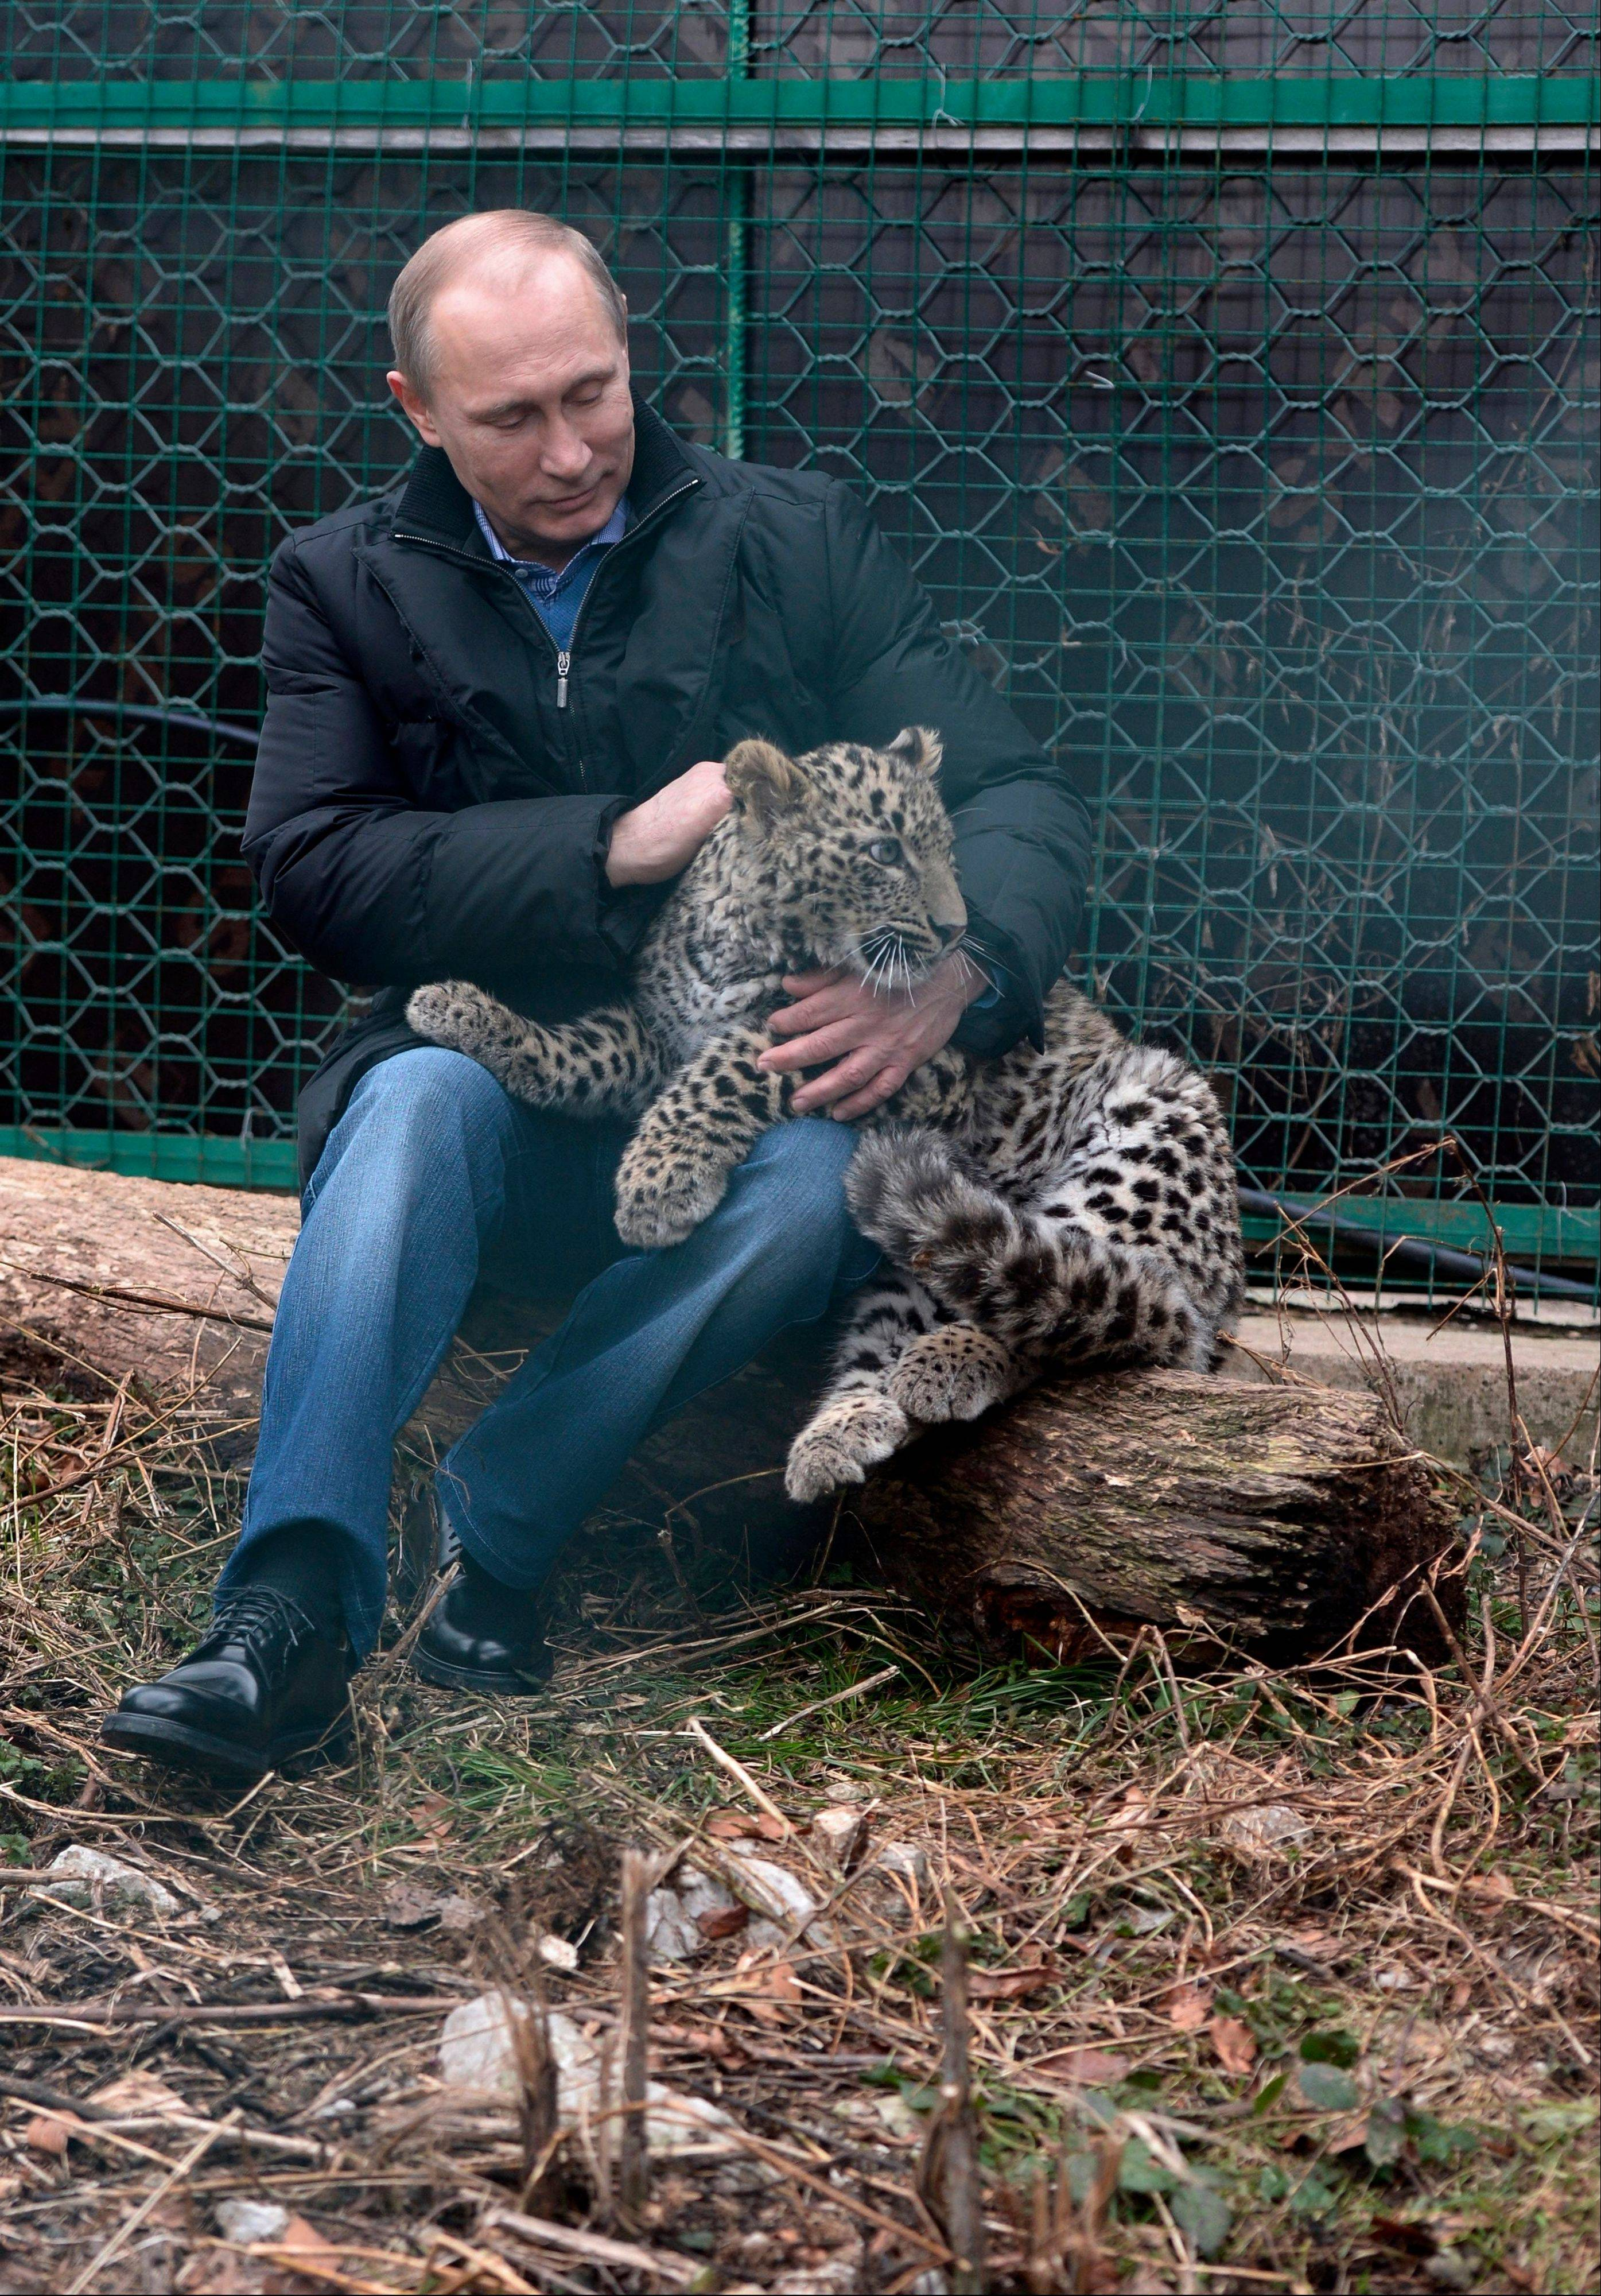 Russian President Vladimir Putin pets a snow leopard cub at the snow leopard sanctuary in the Russian Black Sea resort of Sochi Tuesday. Putin checked in Tuesday at a preserve for endangered snow leopards and visited a group of cubs born last summer in the mountains above the growing torrent of activity in Sochi for the Winter Games.